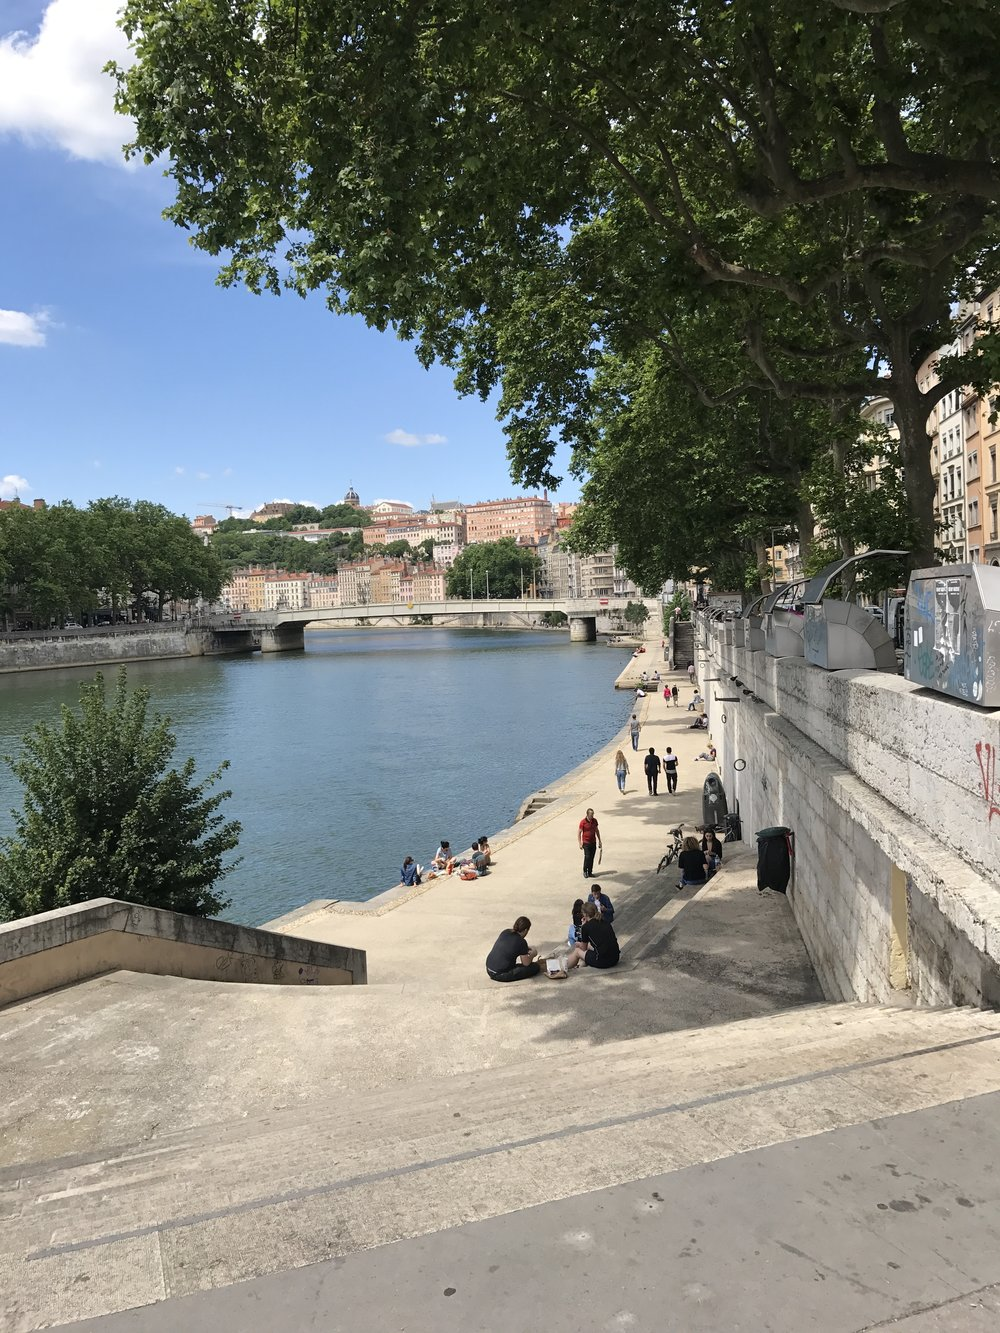 The quays next to the river Saône are an amazing place to hang out, sport, bicycle, walk. That's how you embrace water in your city!